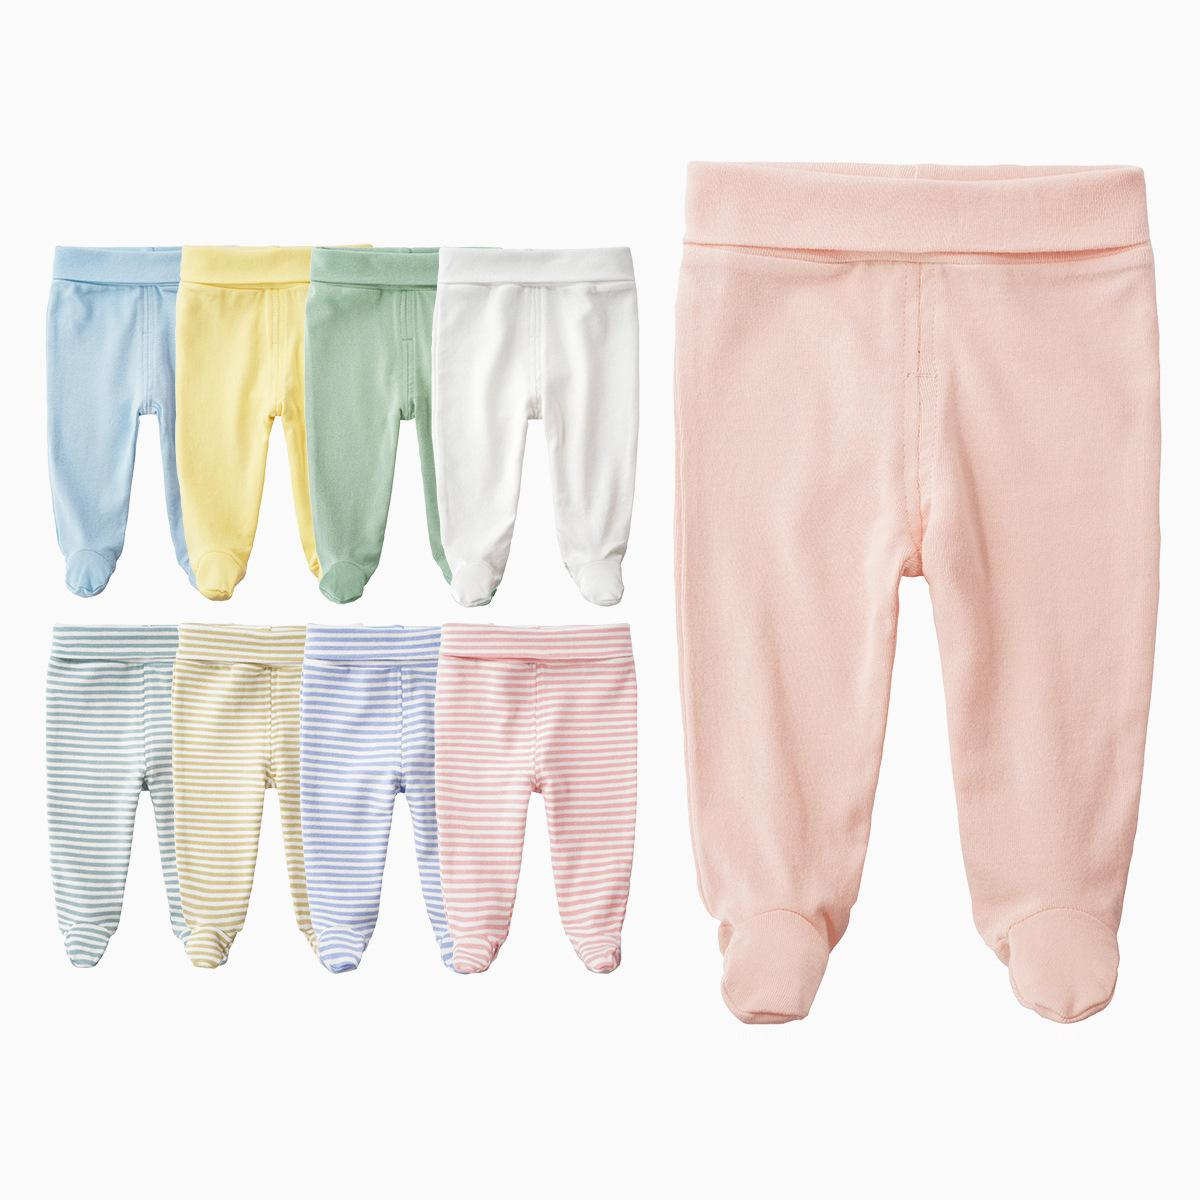 Baby Pants Socks Trousers Newborn Infant Cotton Unisex High 0-3-6M Bag Even